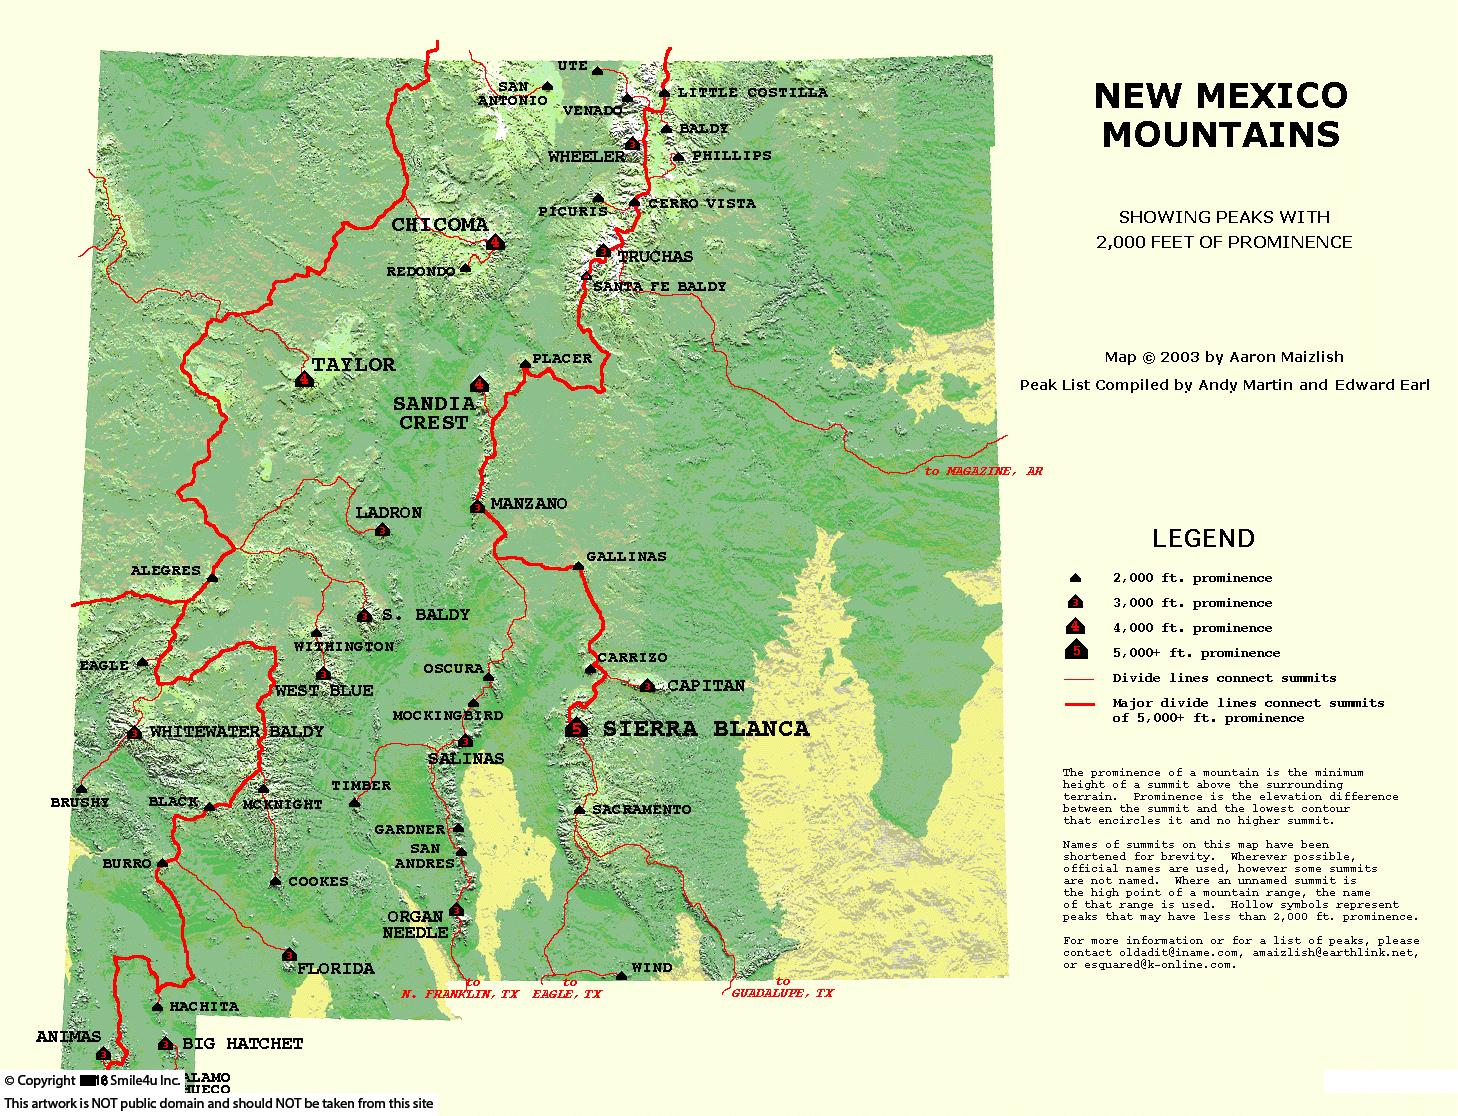 493948_watermarked_newmexicosummits.png